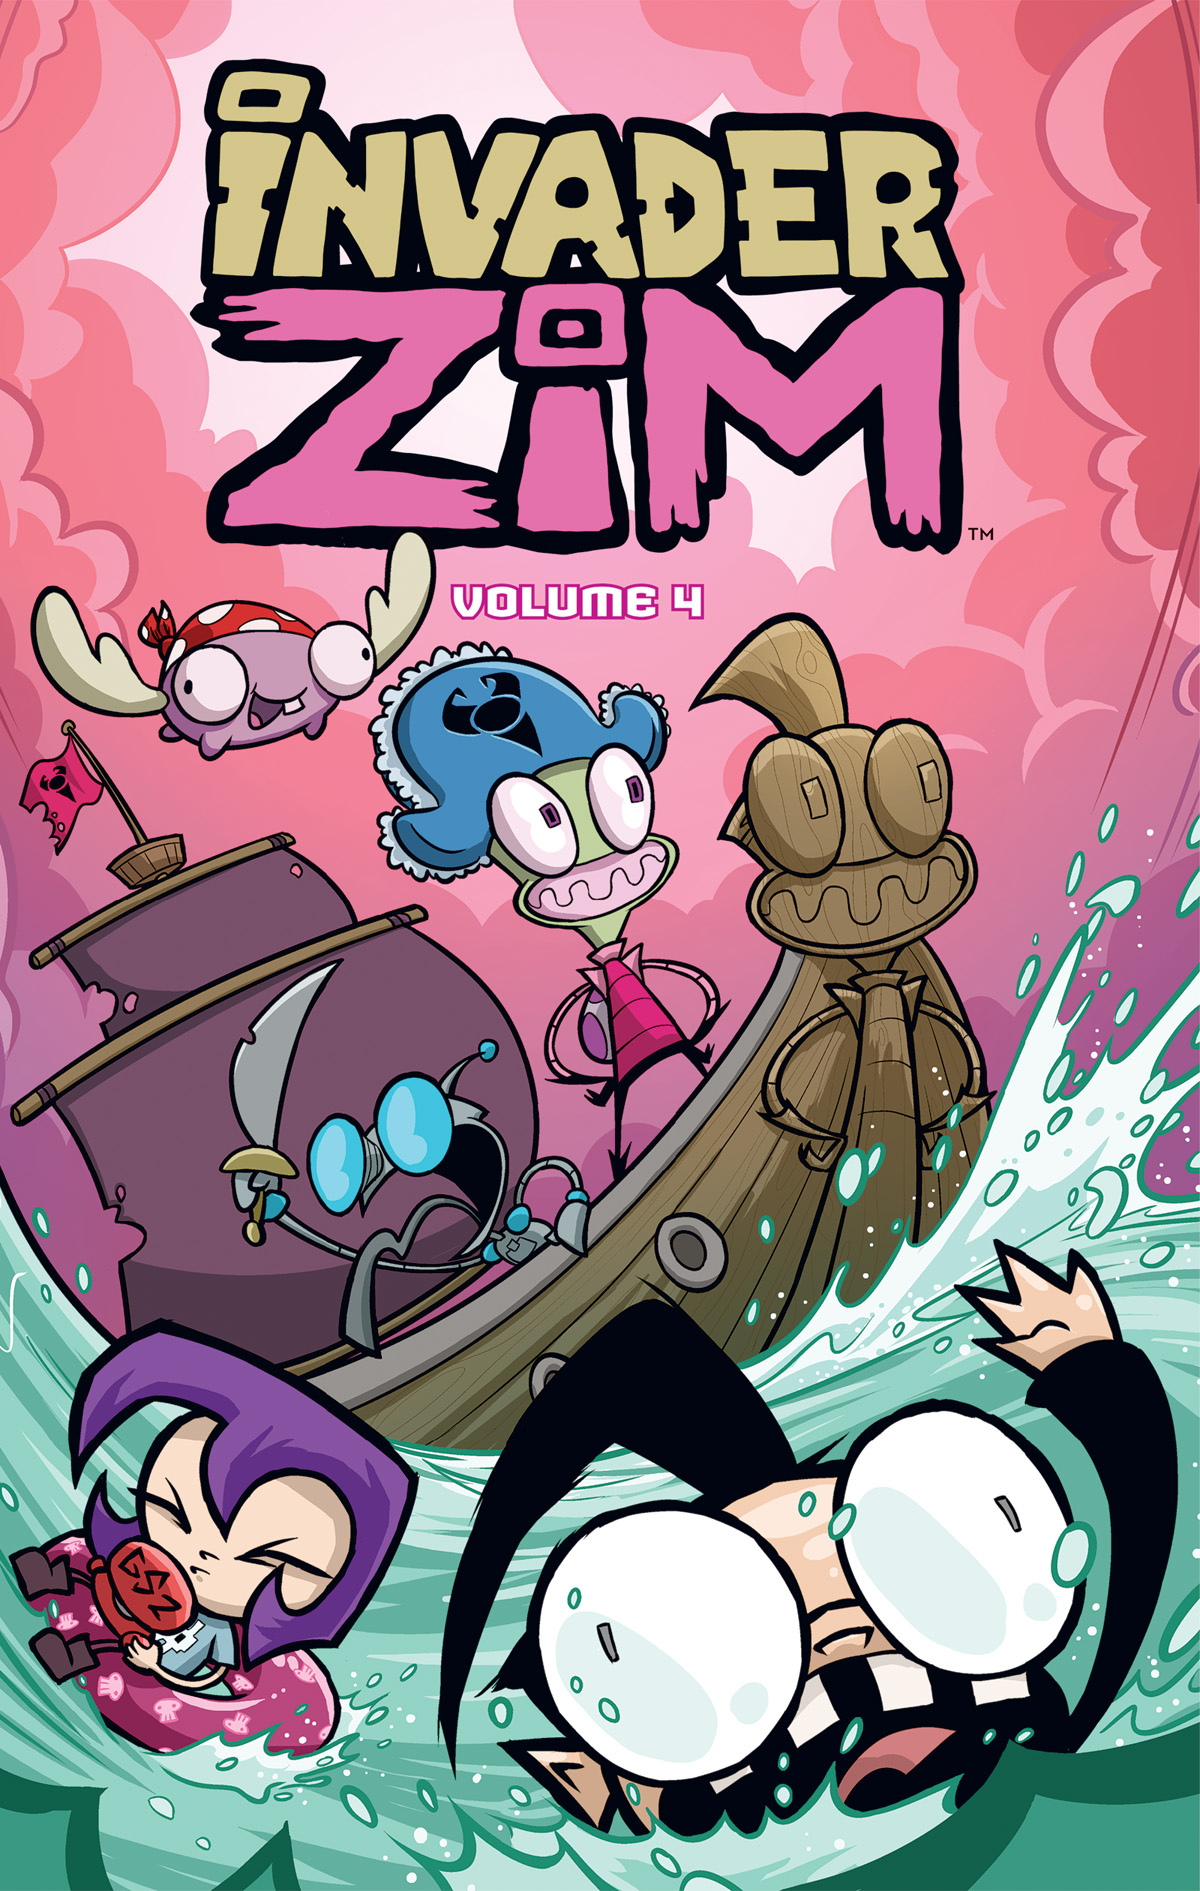 Holy guacamole! ZIM Vol 4 is out! I can't believe we're up to 4, can you? CAN YOU???  I drew four of the issues in this volume and this other guy, Aiden Alaskabox or something, drew the other one. It's got like a clown in it, I think?